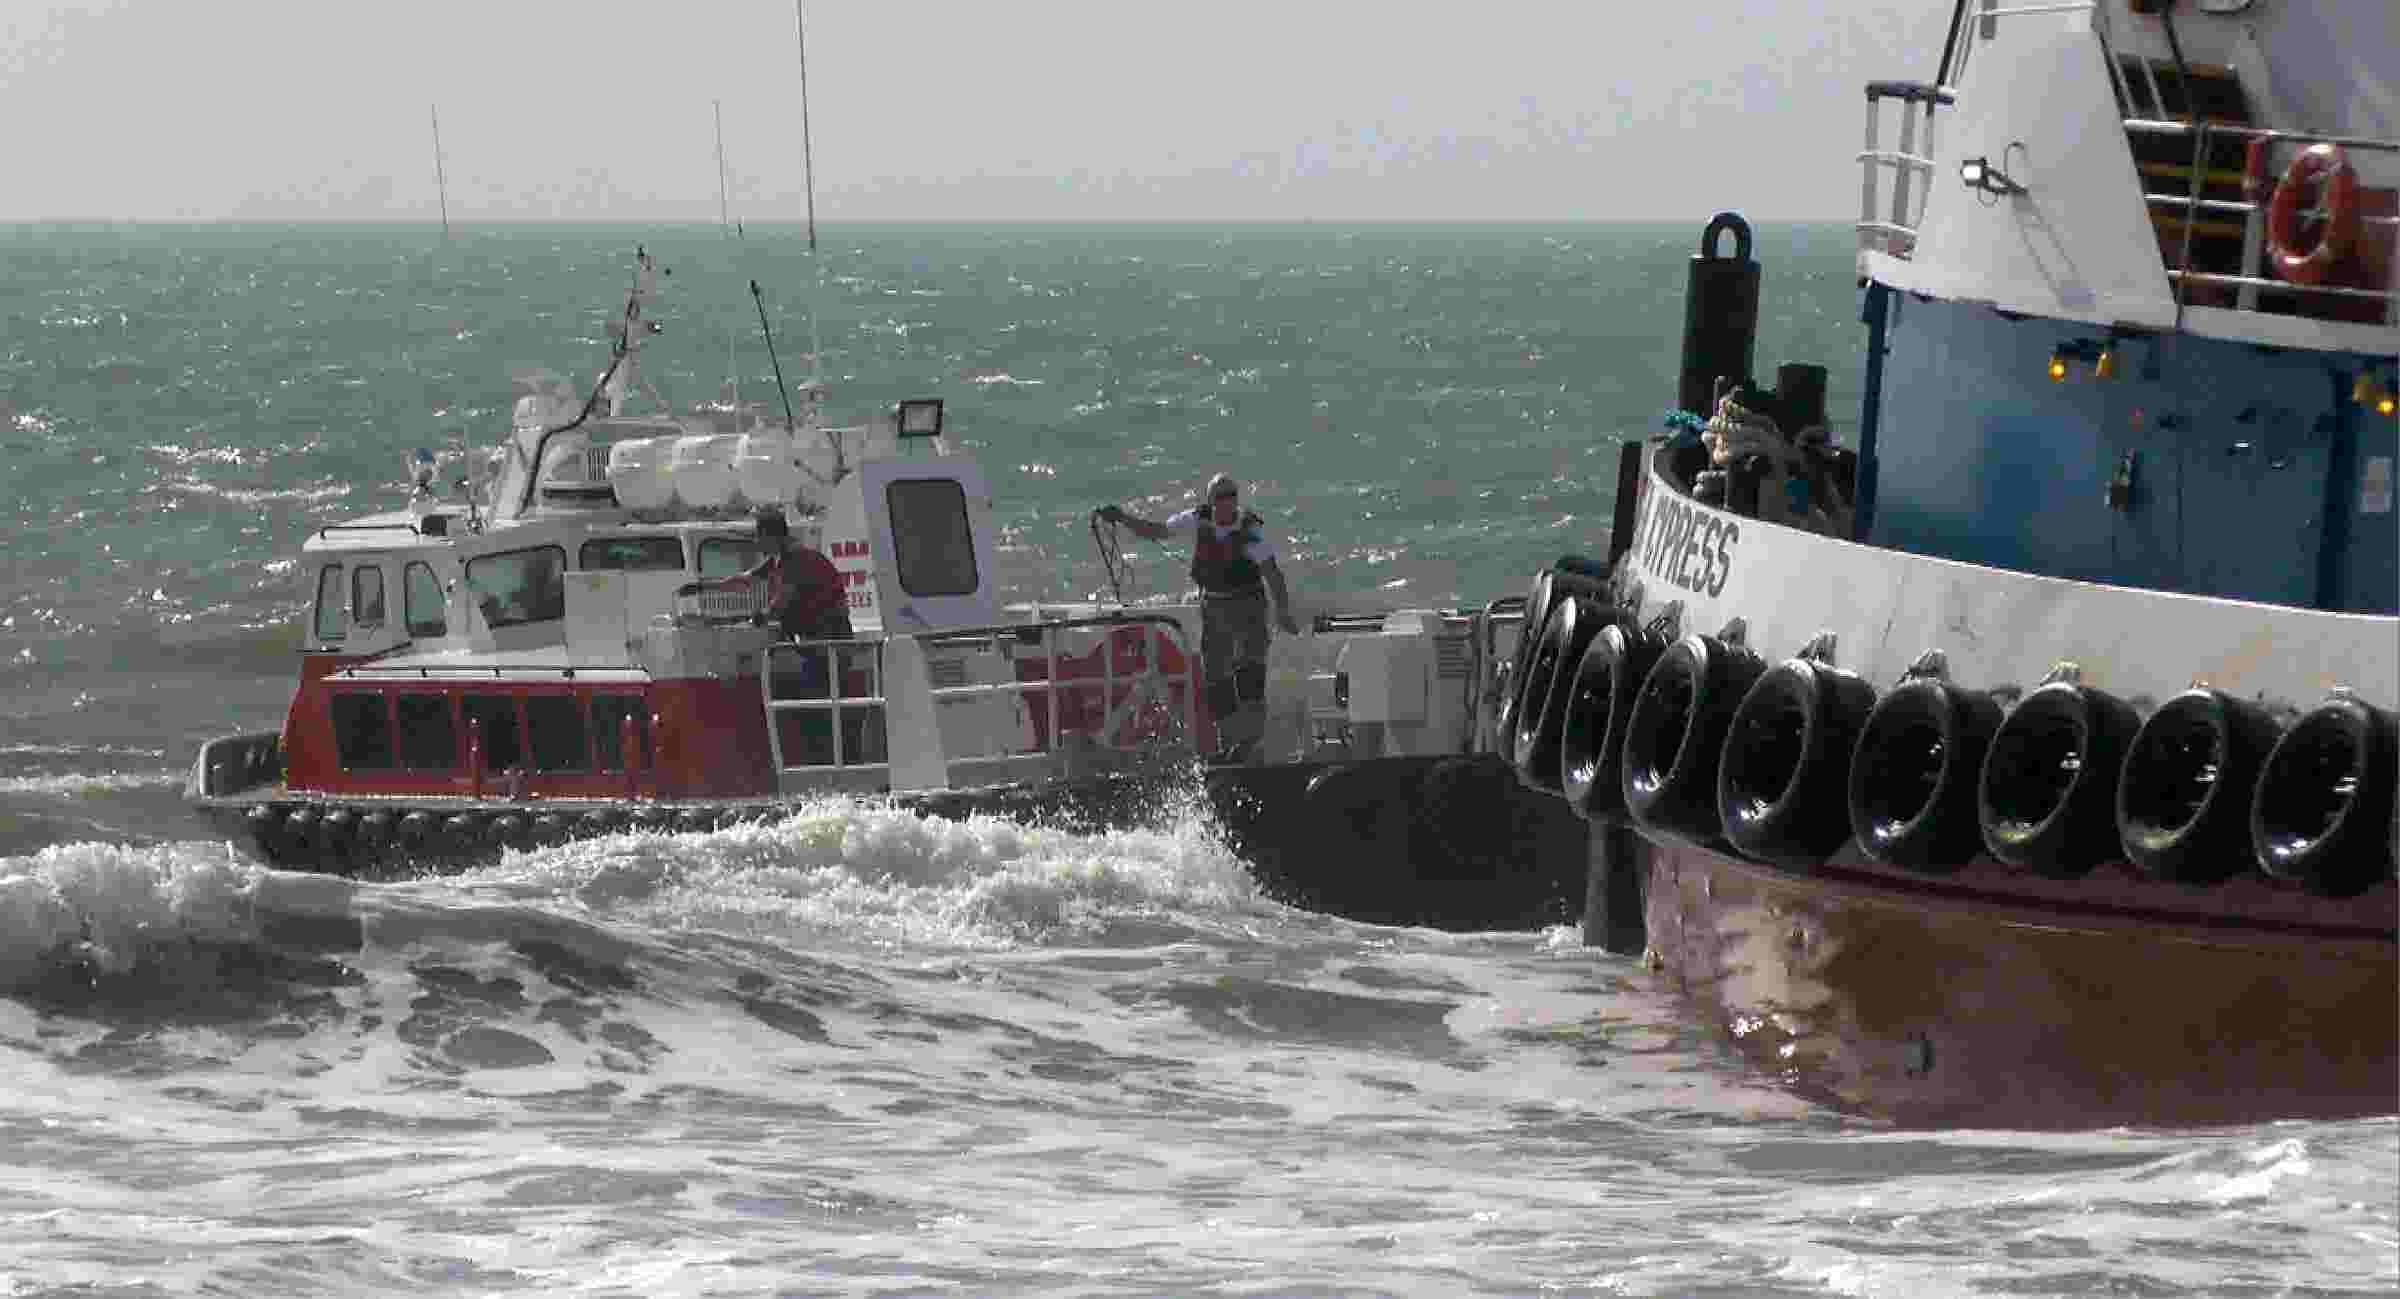 Runaway tugboat grounded off Lavallette